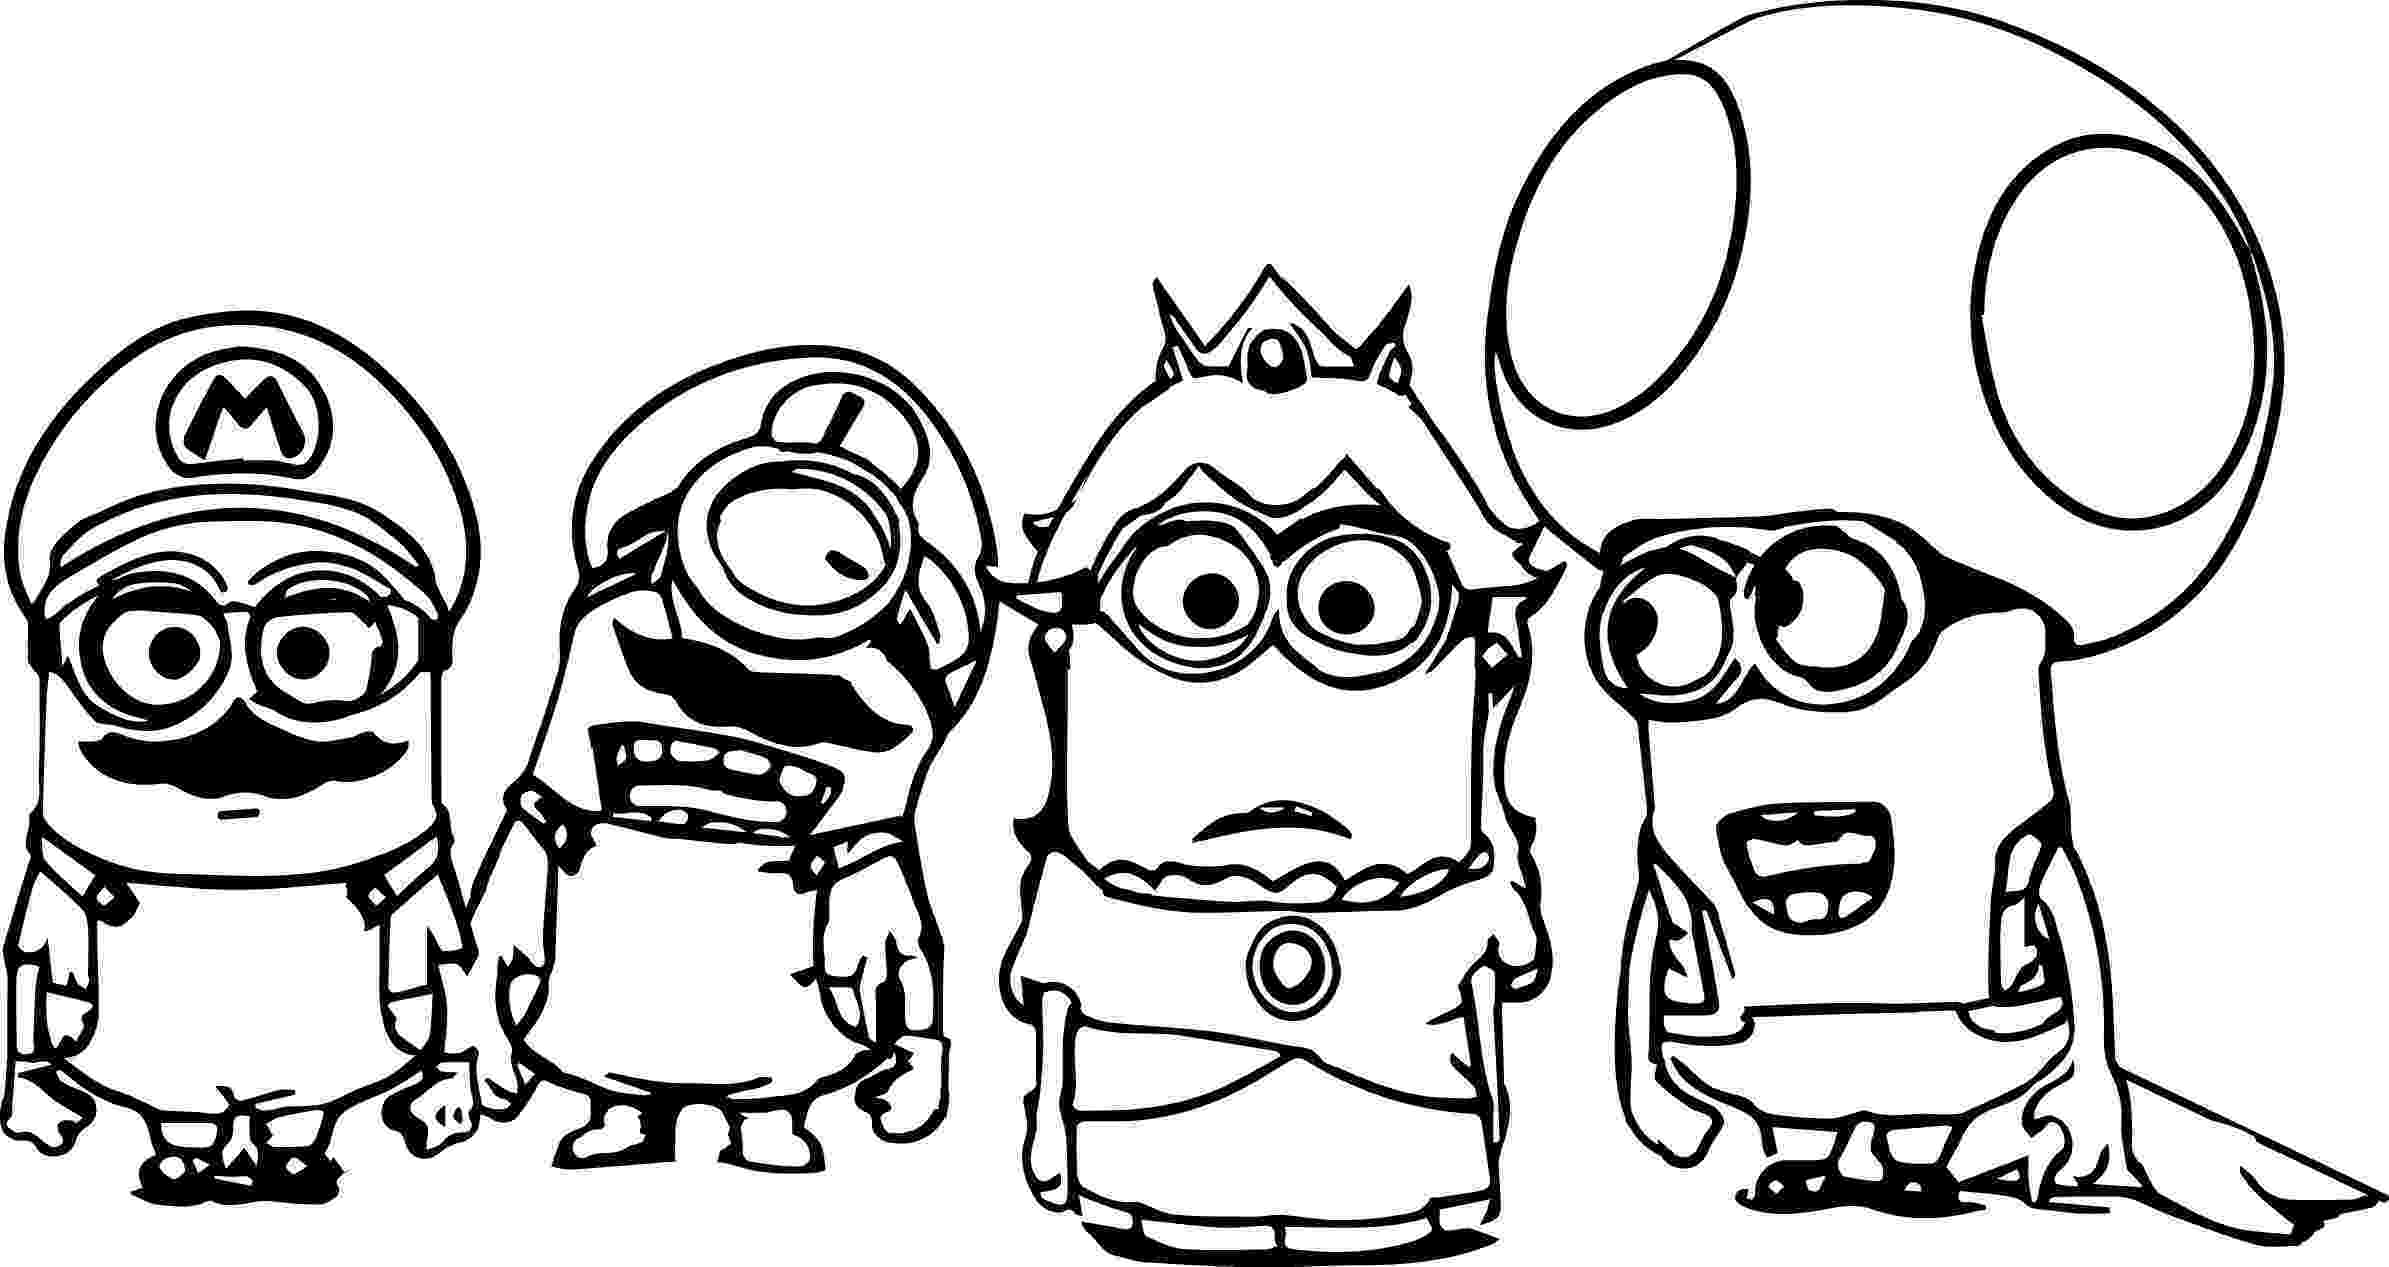 printable colouring pages minions minion coloring pages best coloring pages for kids minions pages colouring printable